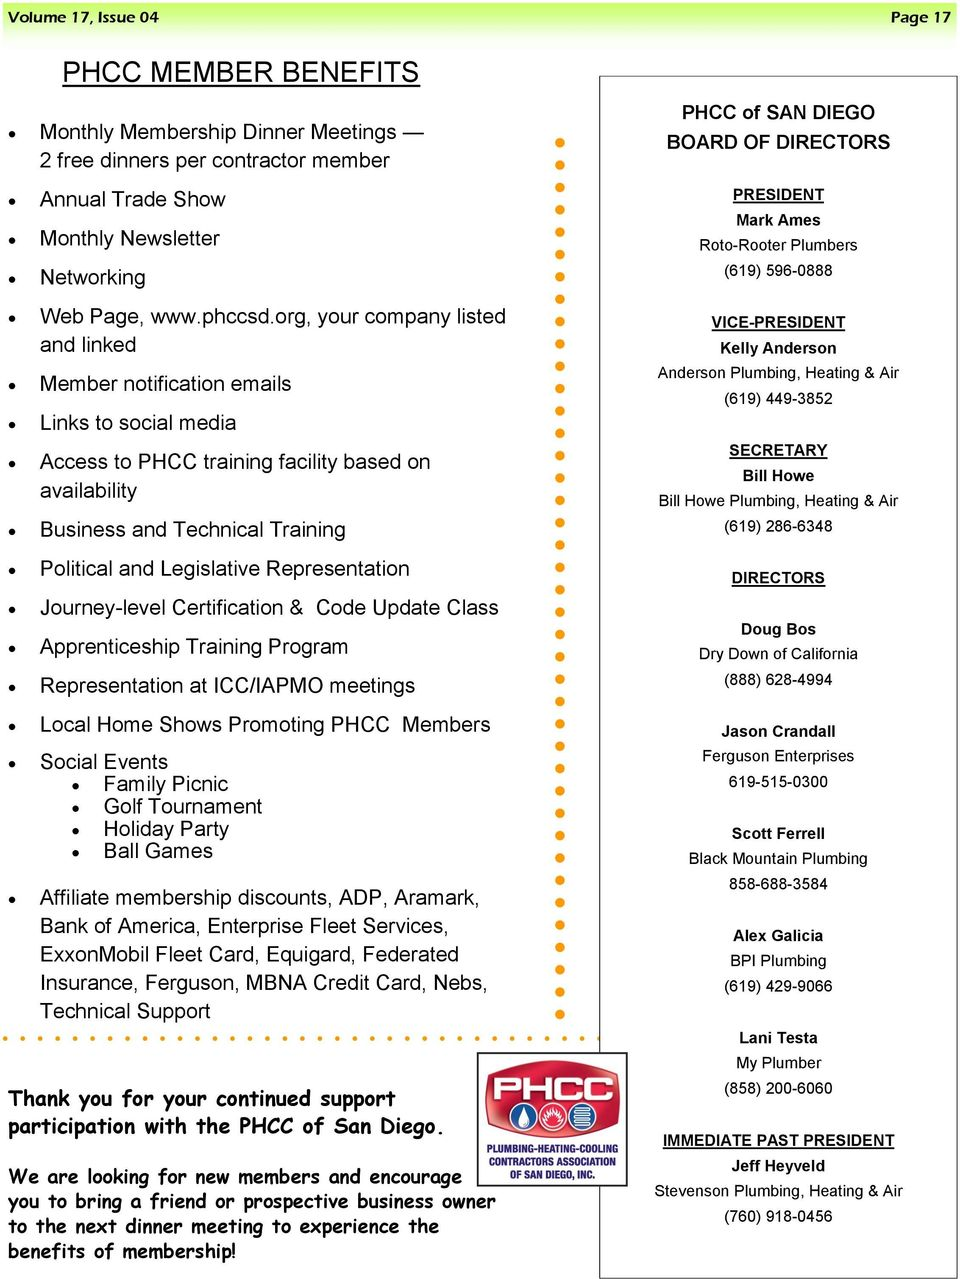 Representation Journey-level Certification & Code Update Class Apprenticeship Training Program Representation at ICC/IAPMO meetings Local Home Shows Promoting PHCC Members Social Events Family Picnic